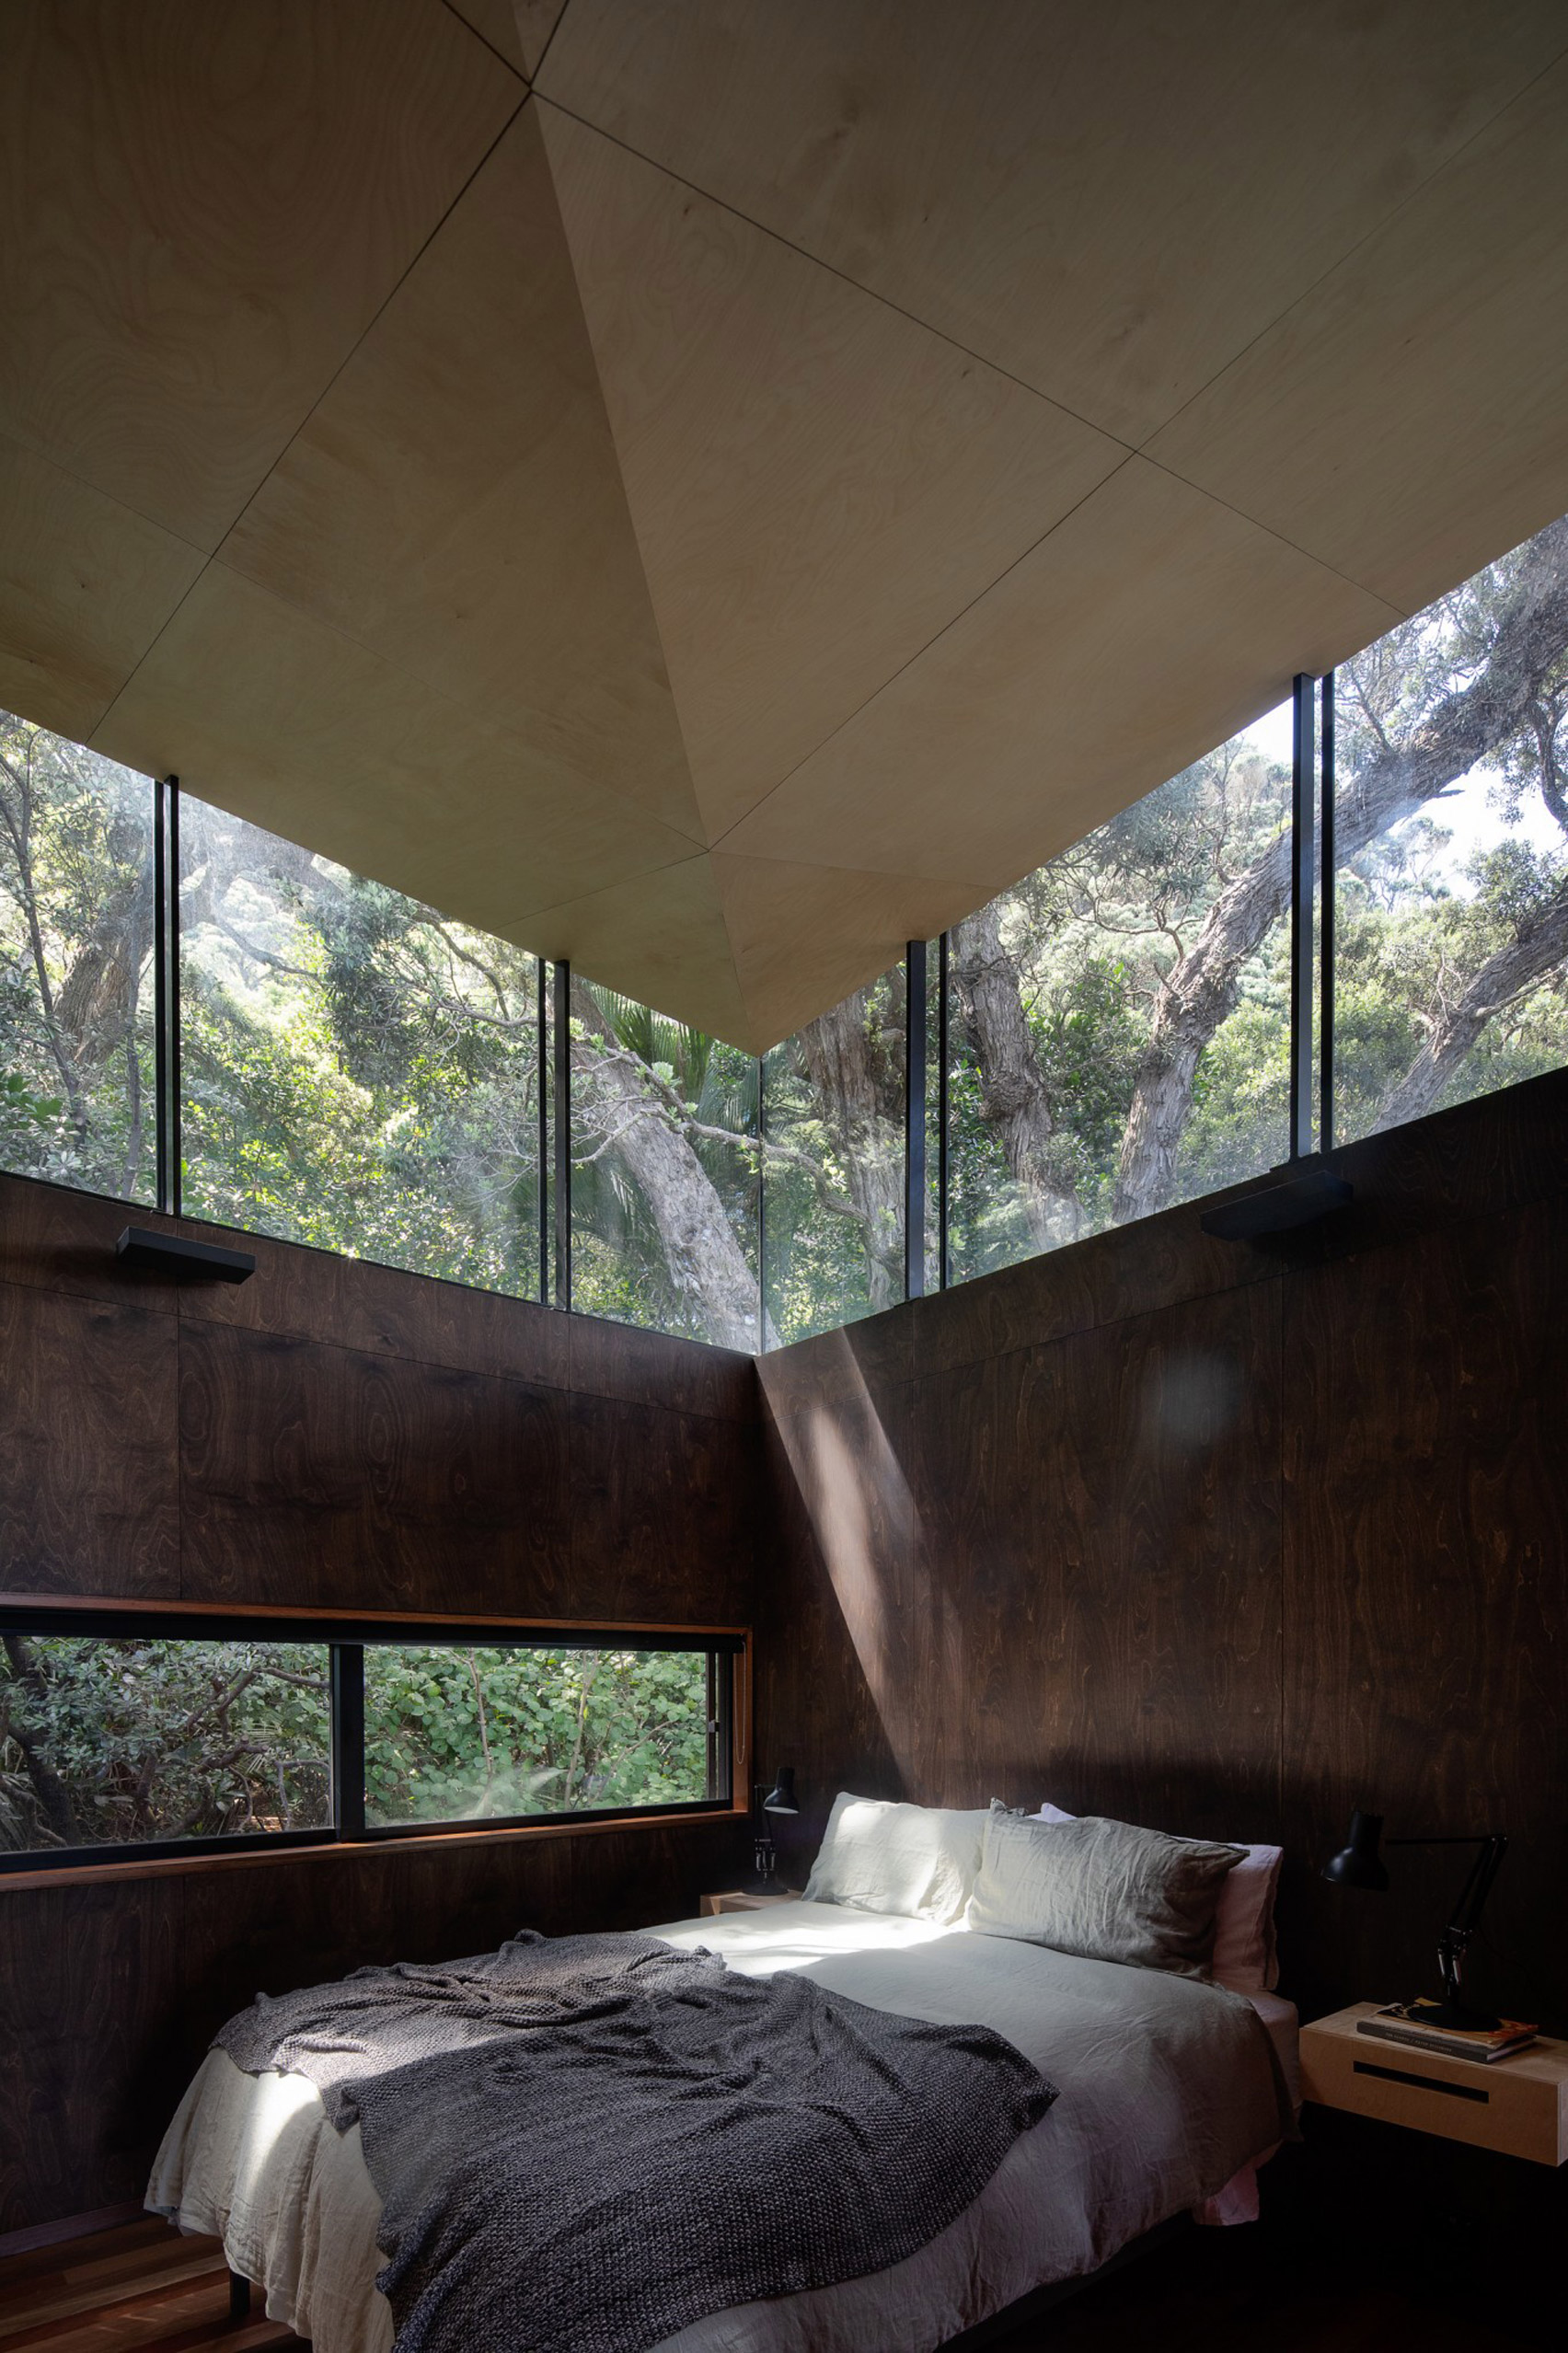 Modern design bedroom surrounded by trees